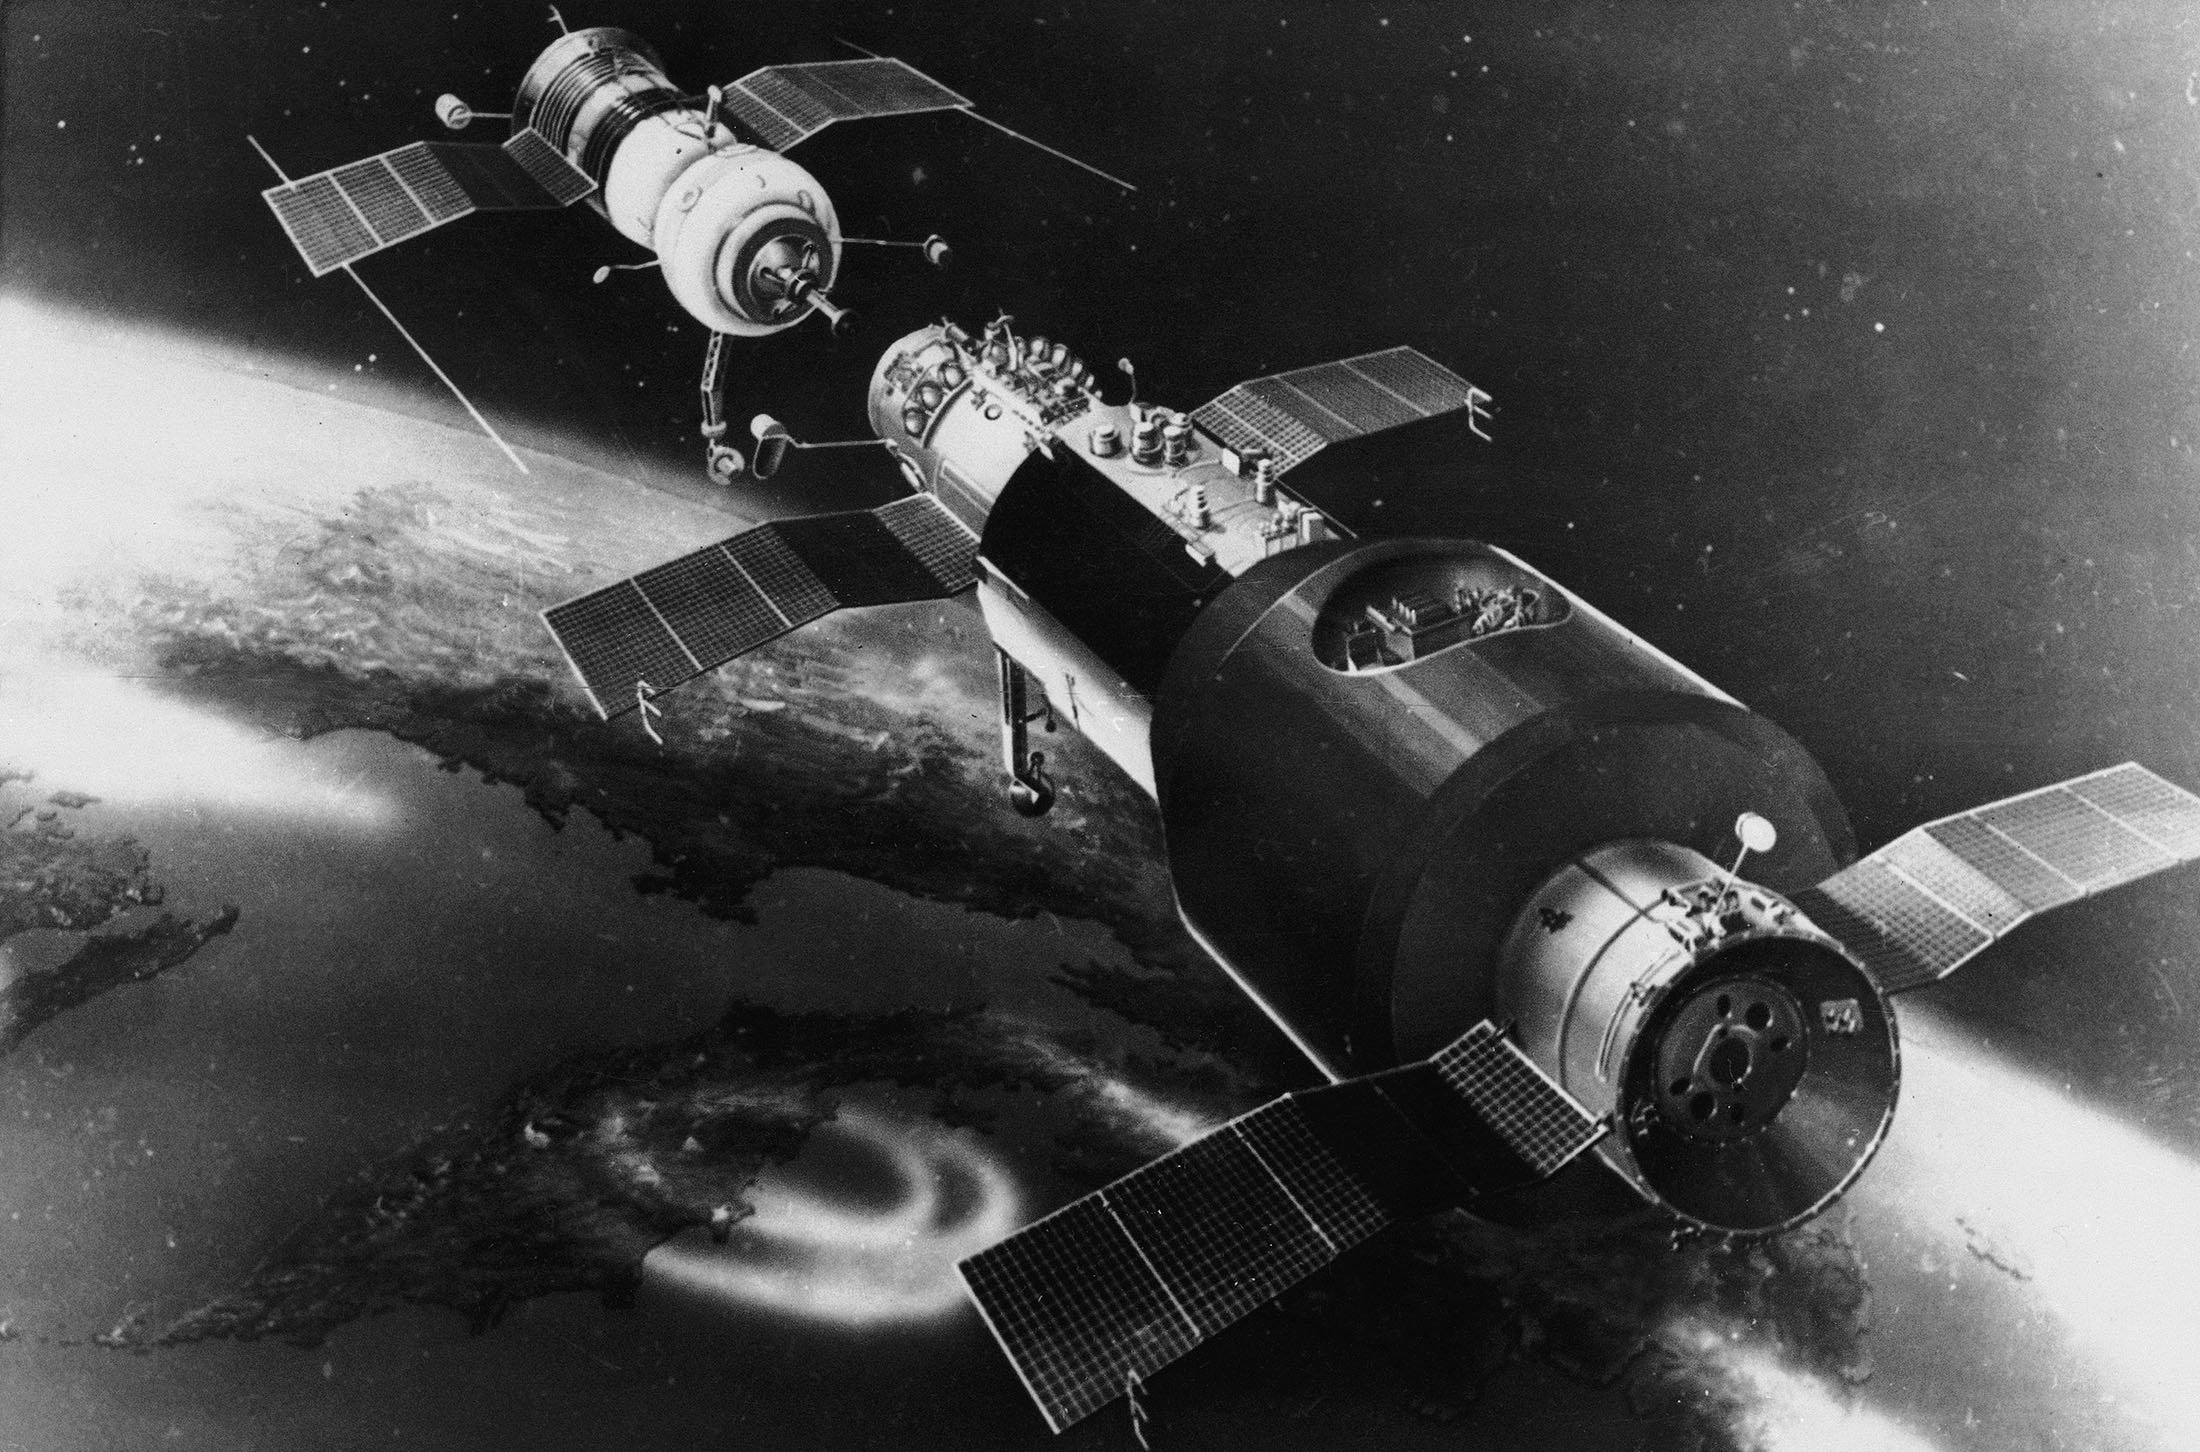 This is an artist's concept of Soyuz 11 and the Salyut spacecraft, preparing to dock in space, 1971. (AP Photo)